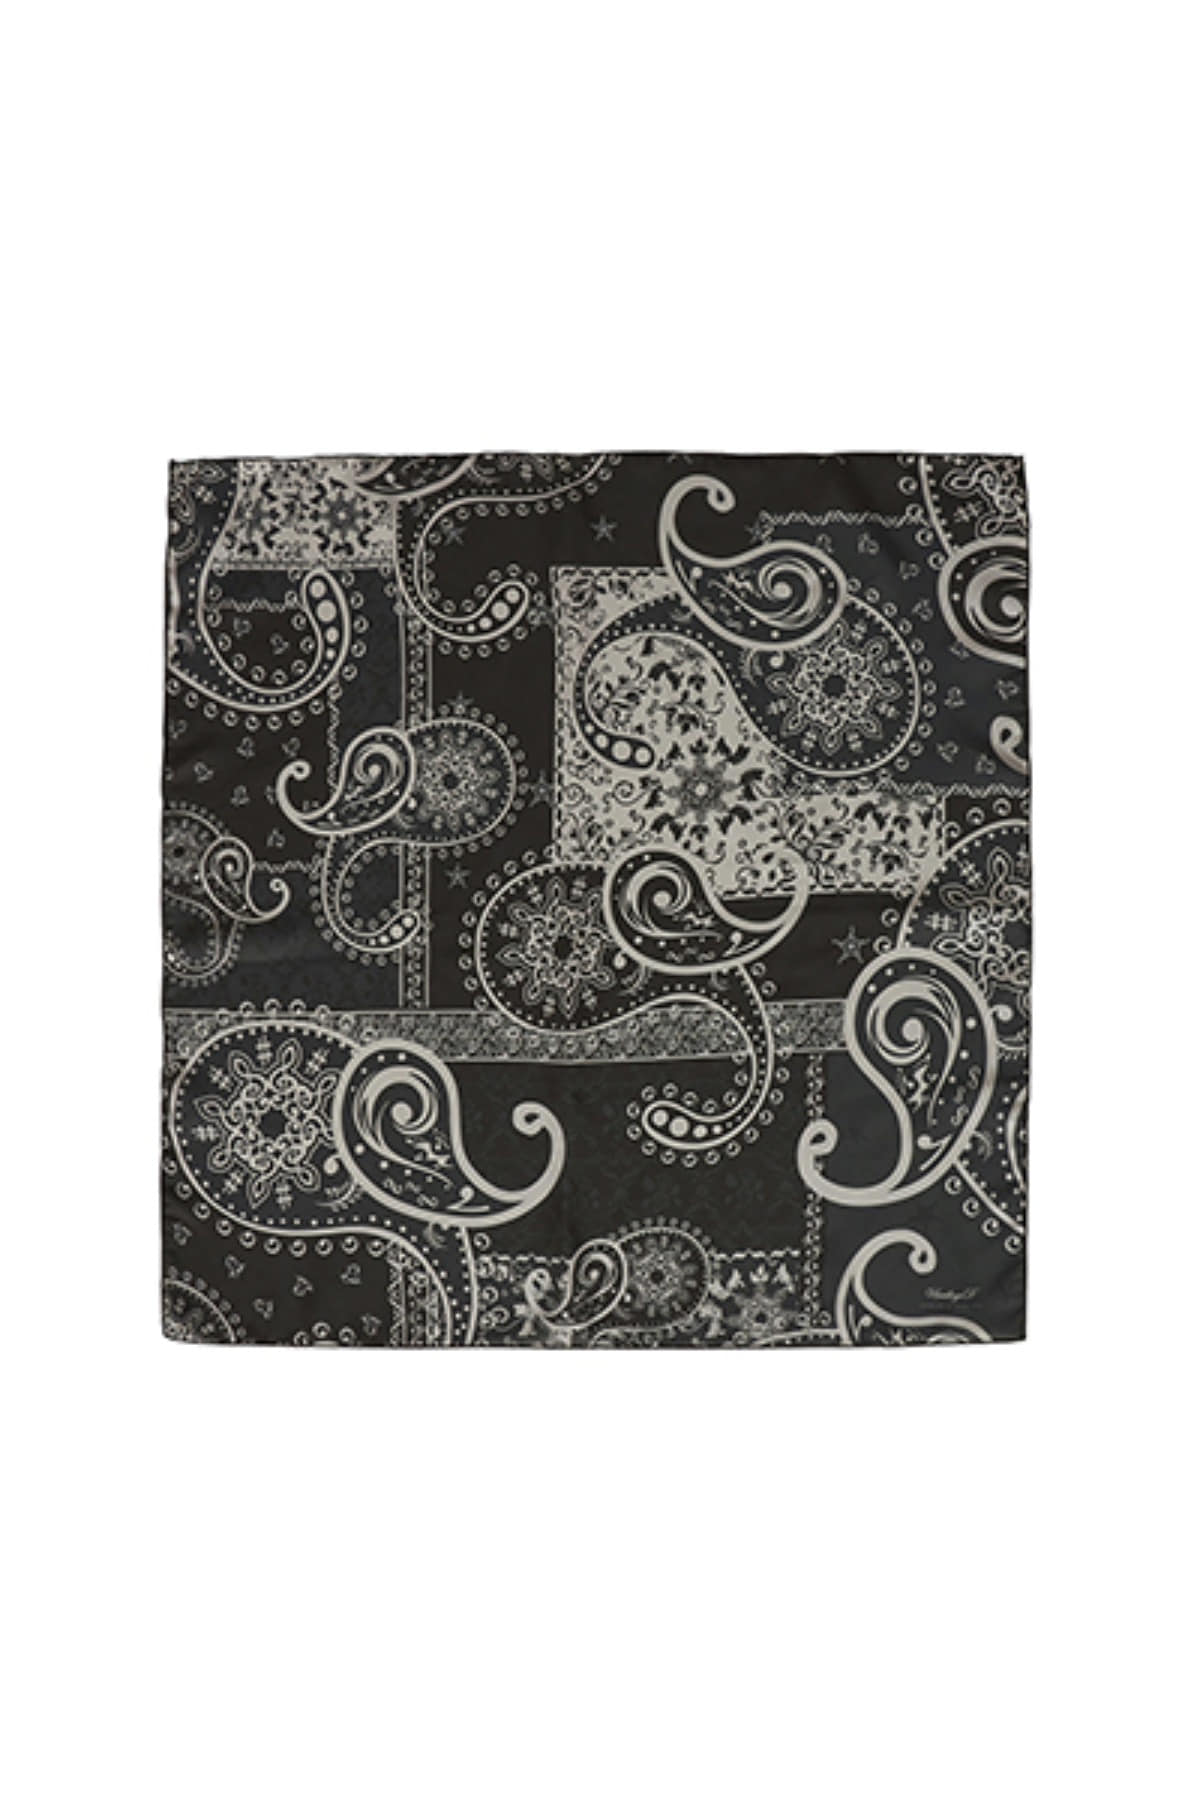 NOTE PAISLEY BANDANA / BLACK